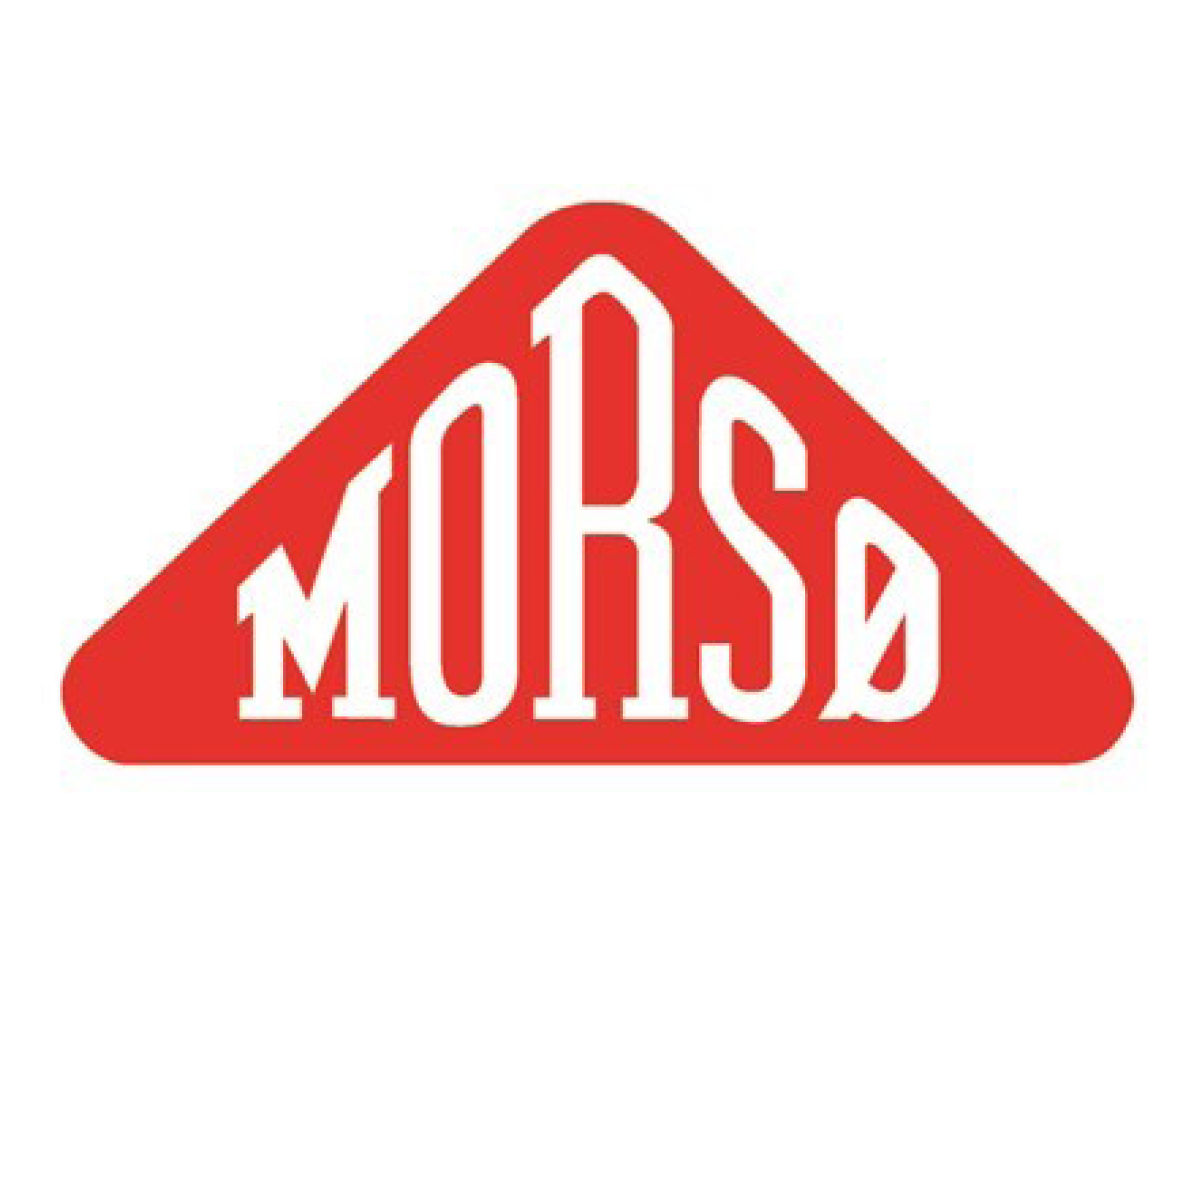 morse Experience, development and quality are the keywords behind every Morso Dan-List product since 1911.